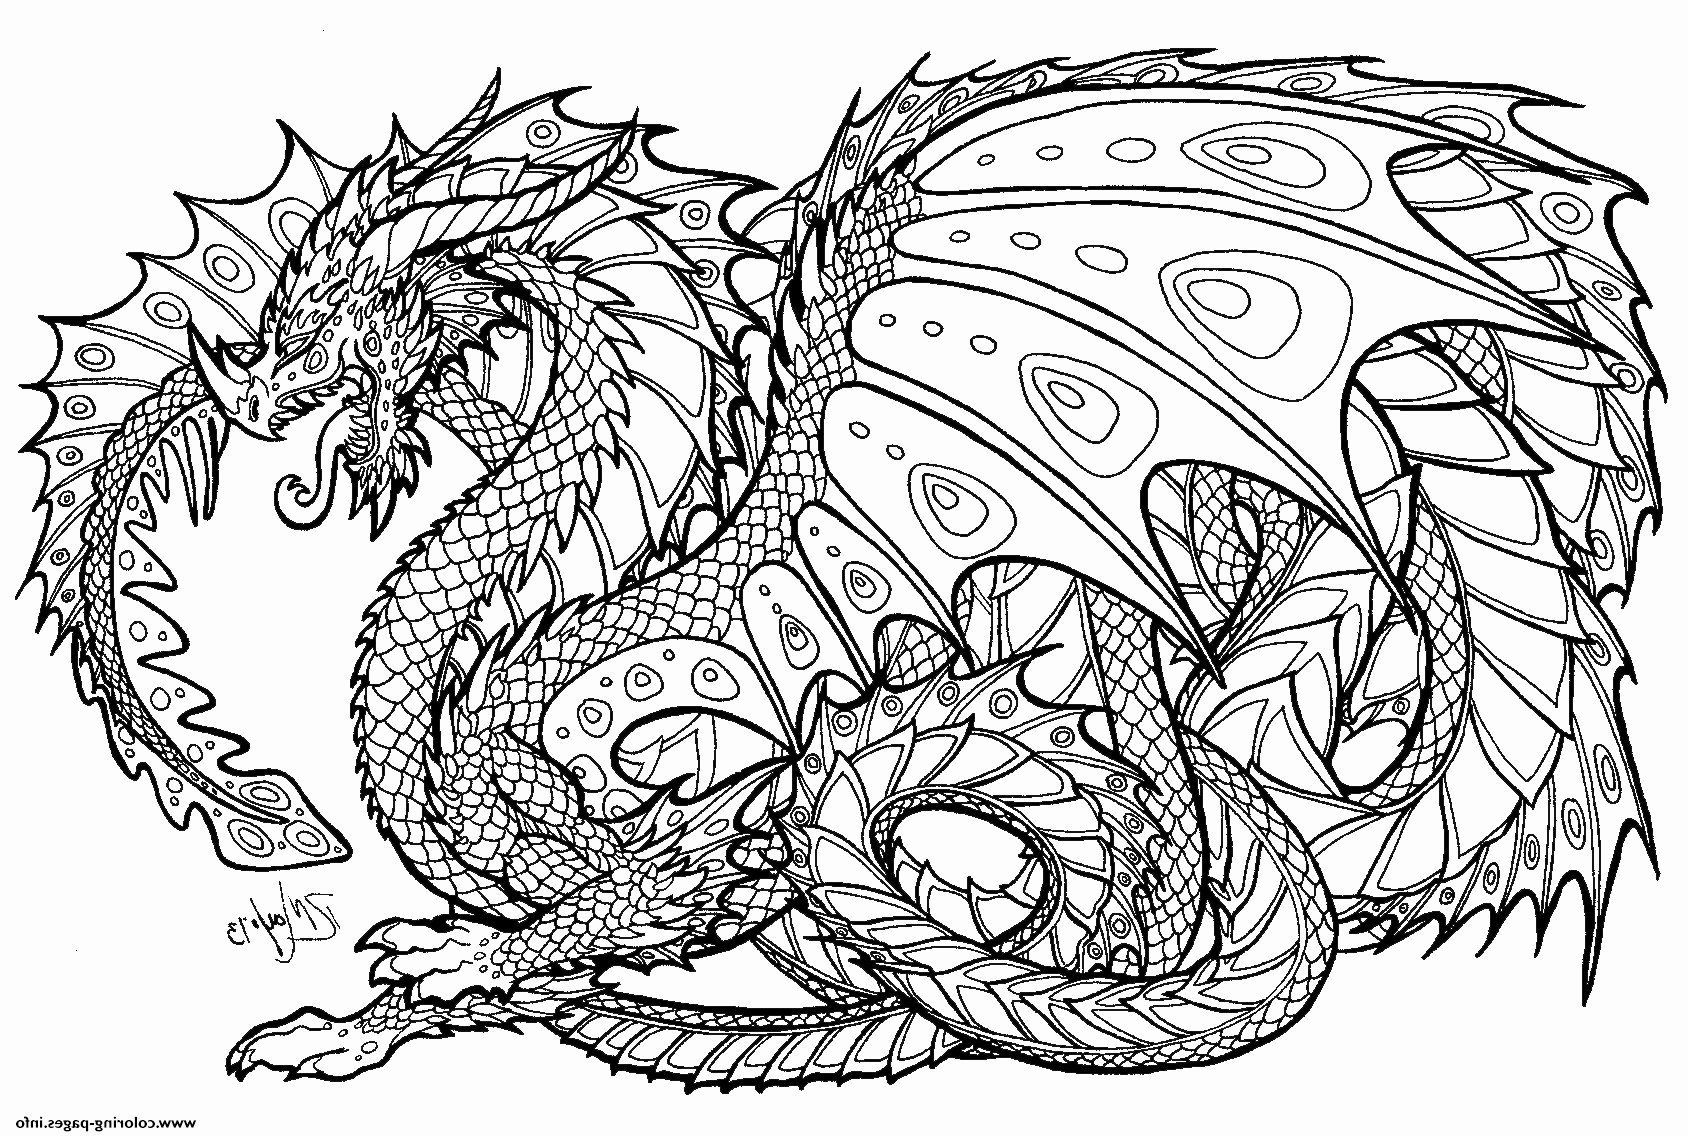 Fire Breathing Dragons Coloring Pages Luxury 99 Lovely Dragon